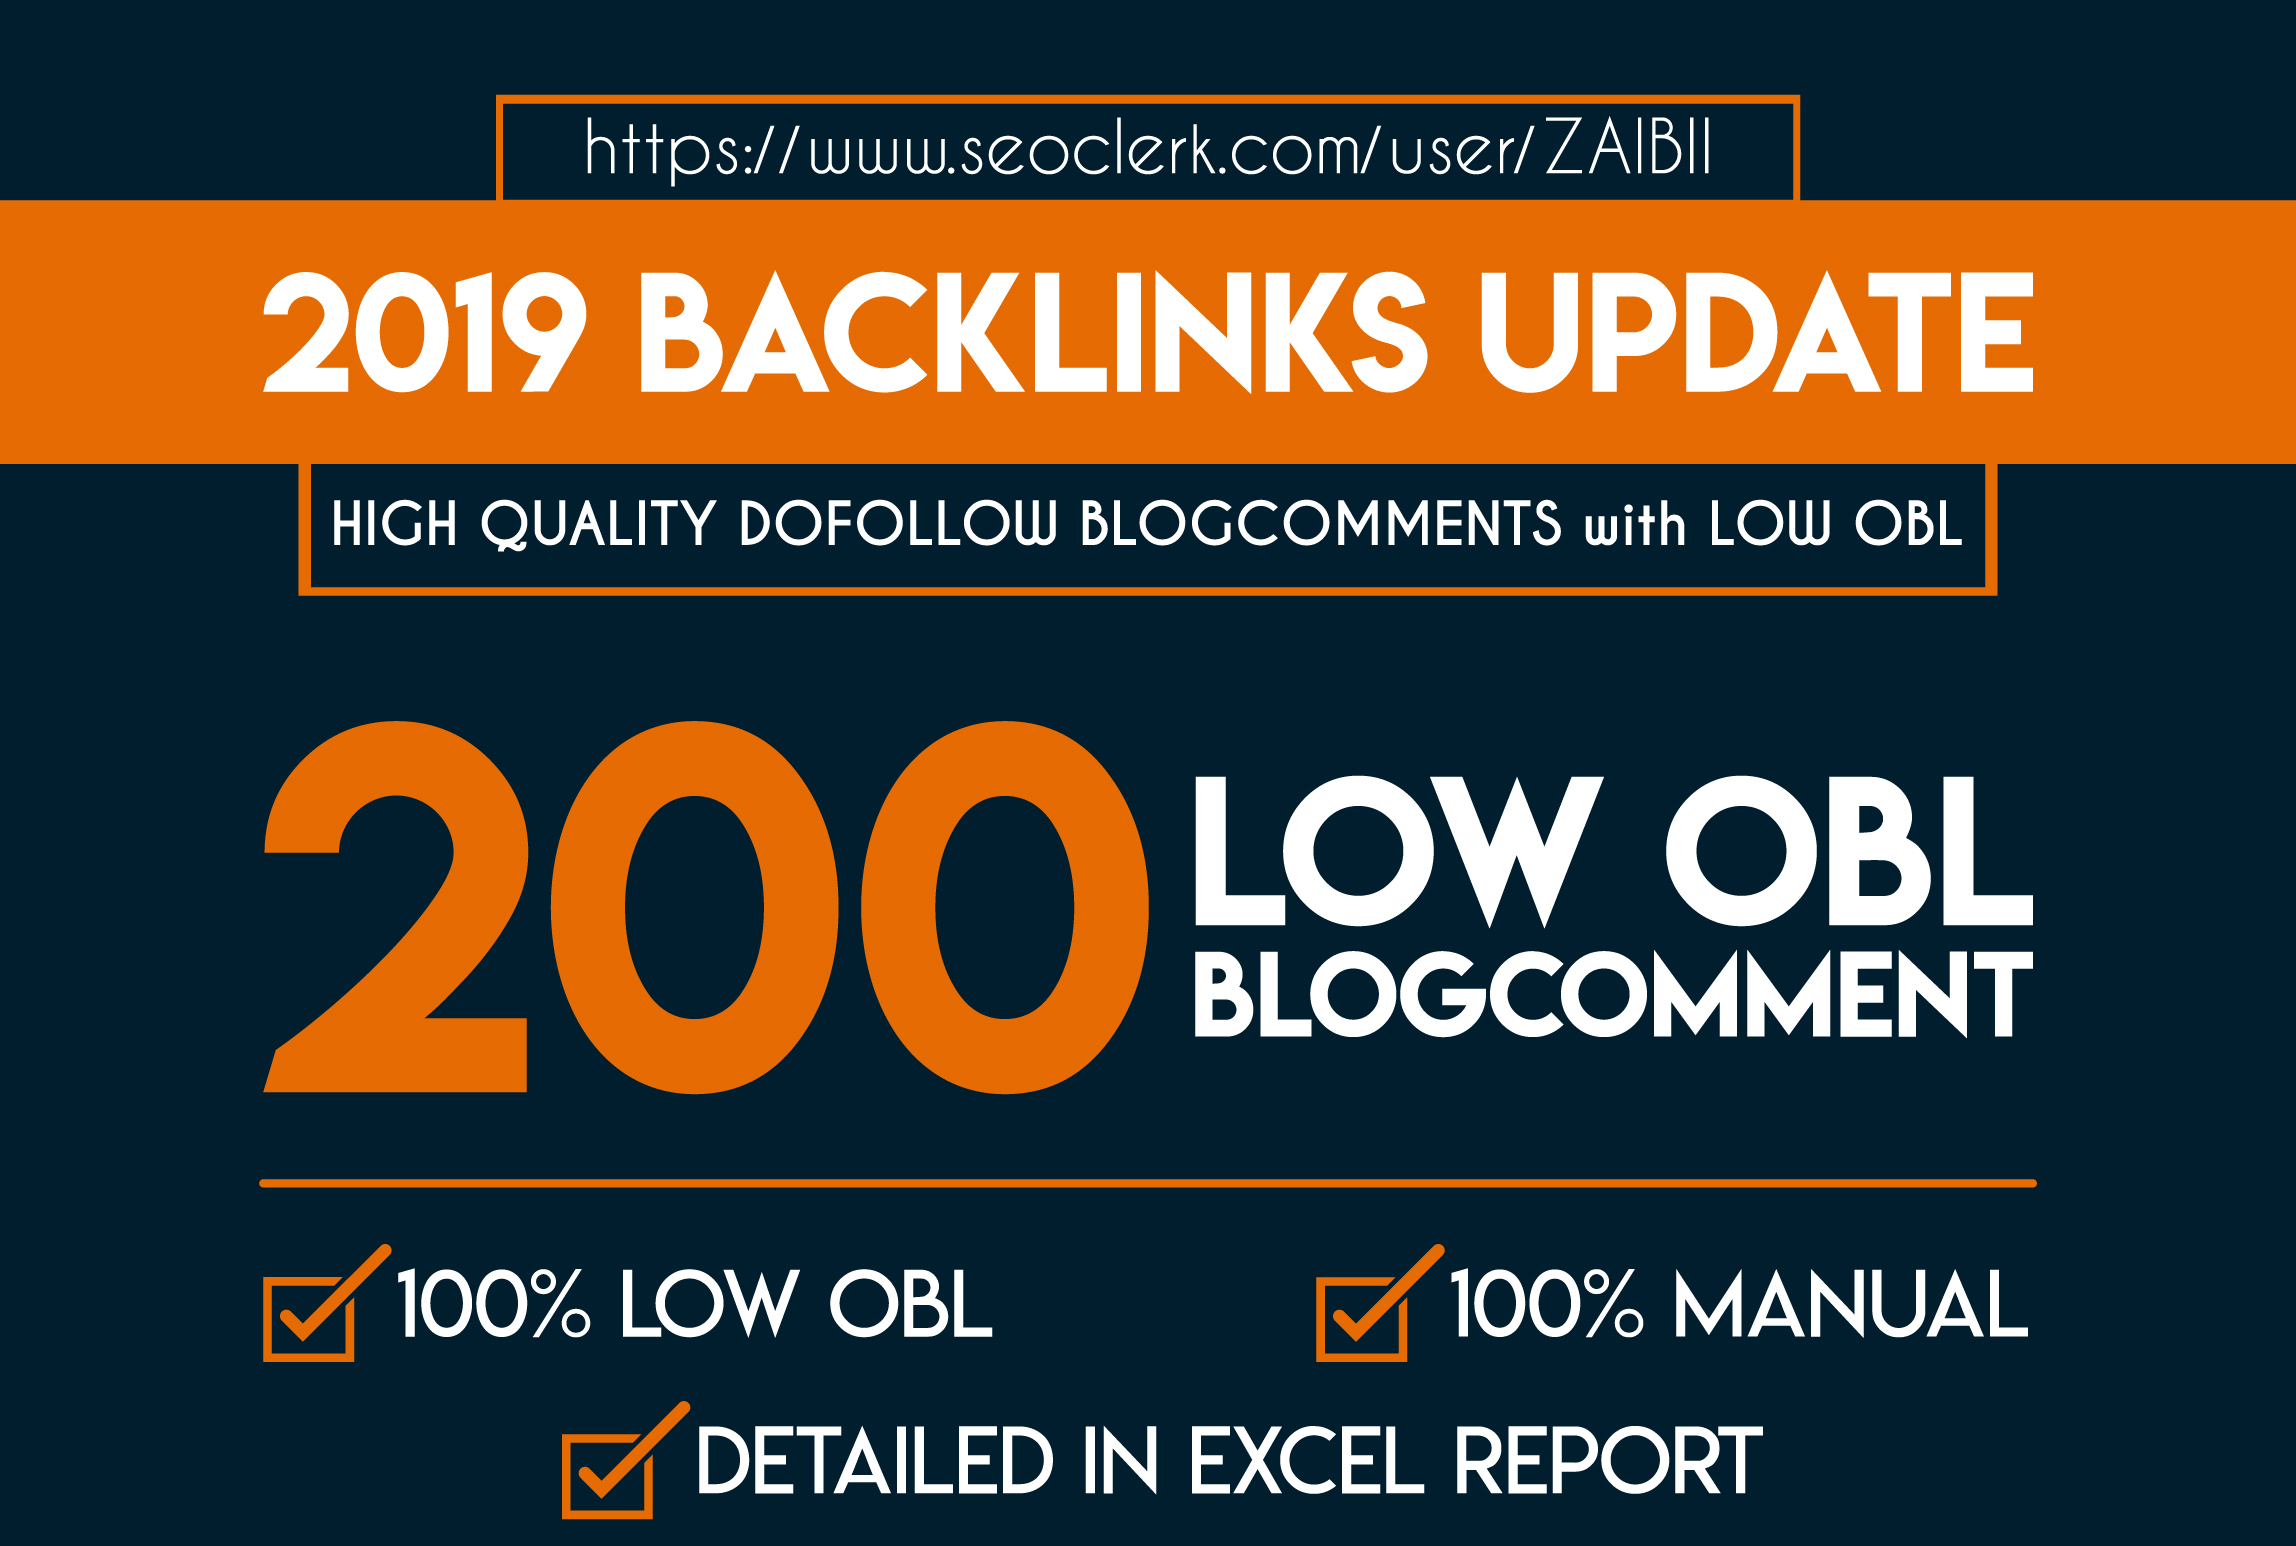 2019 Updated Backlinks High quality Dofollow Blogcomments with LOW OBL